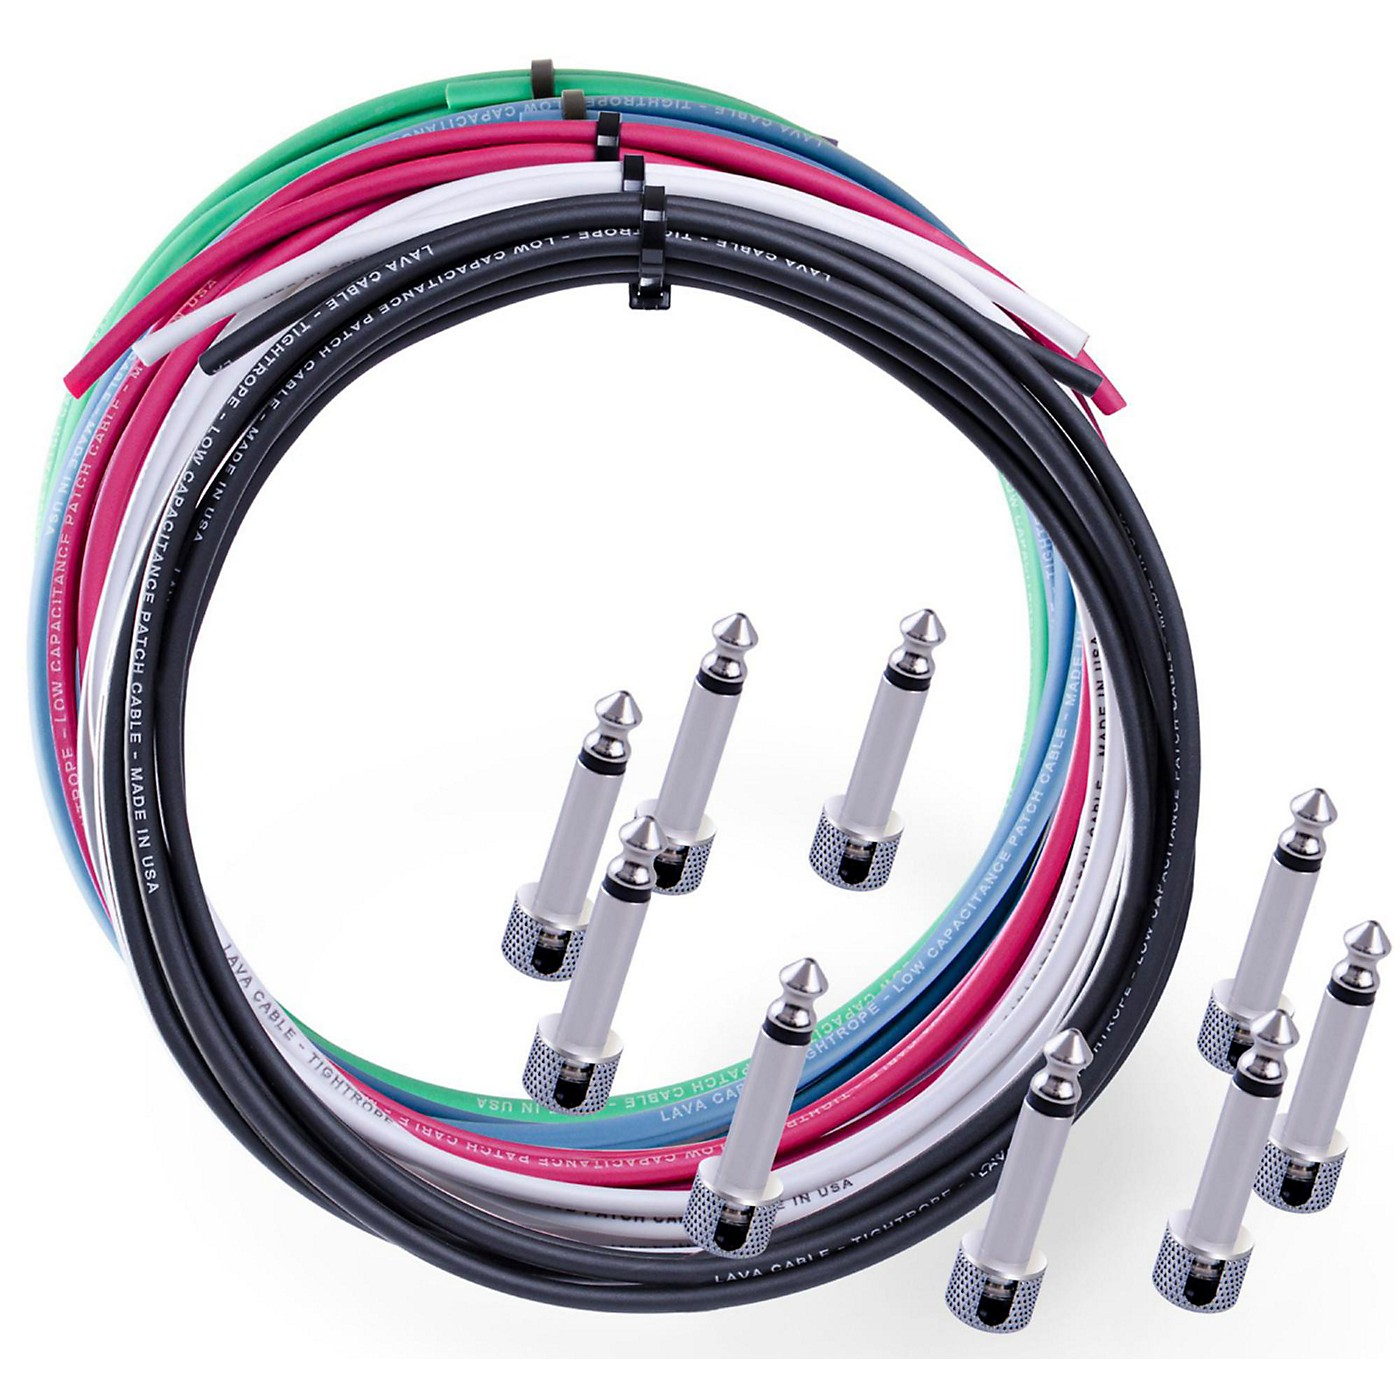 Lava Tightrope Solder-Free Cable Kit with 10 Right Angle Plugs thumbnail